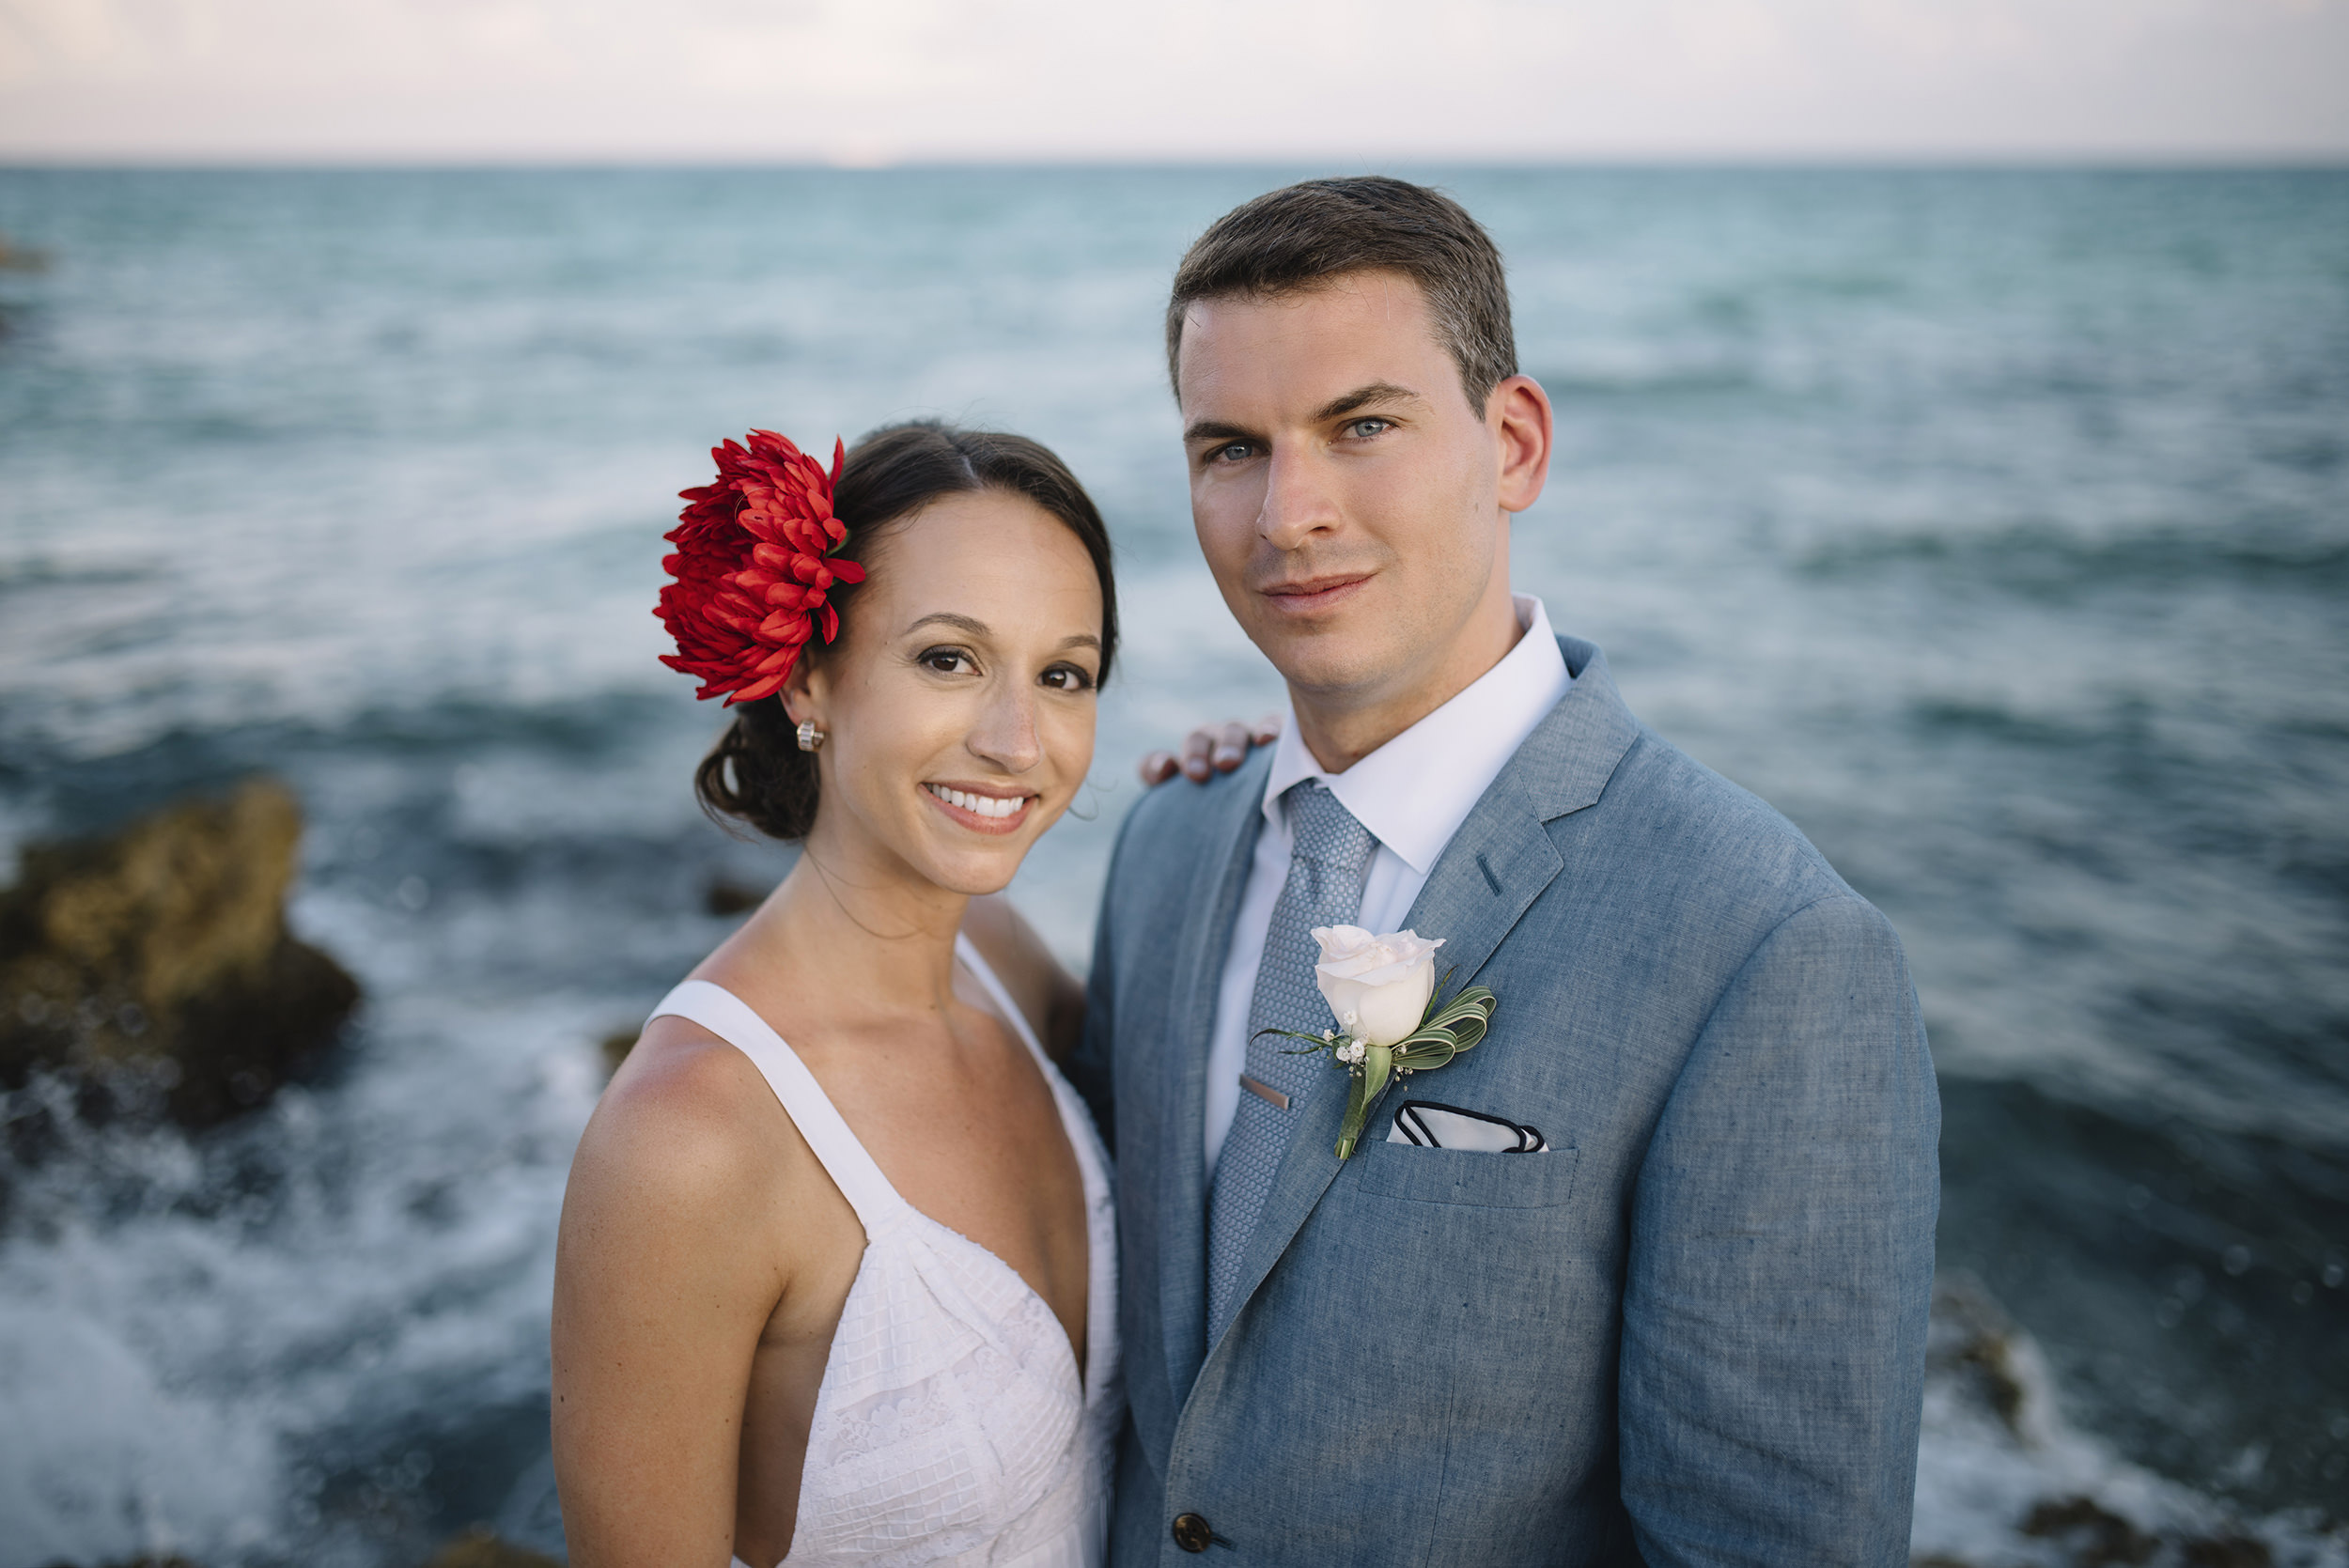 Colby-and-Jess-Intimate-Beach-Wedding-Destination-Cancun-Mexico88.jpg